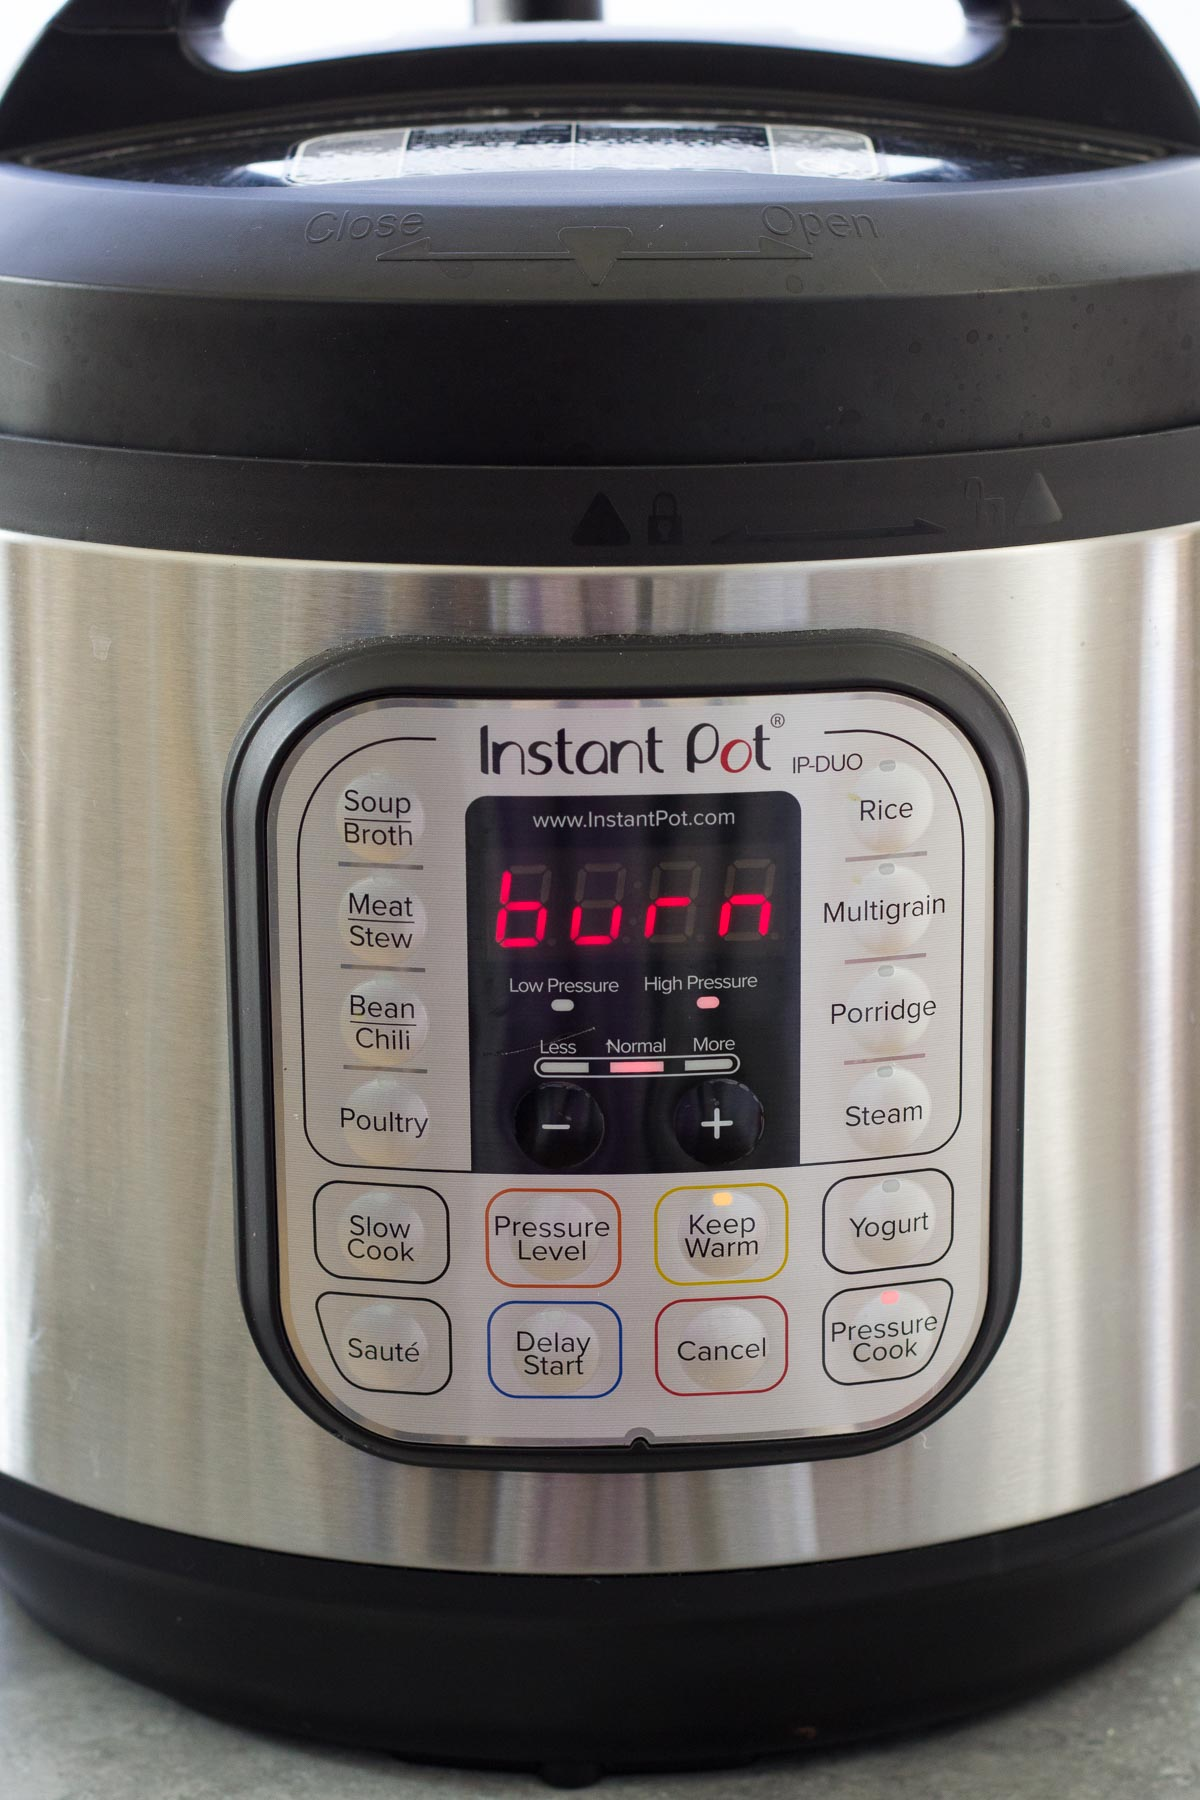 Instant Pot that says burn on the display.